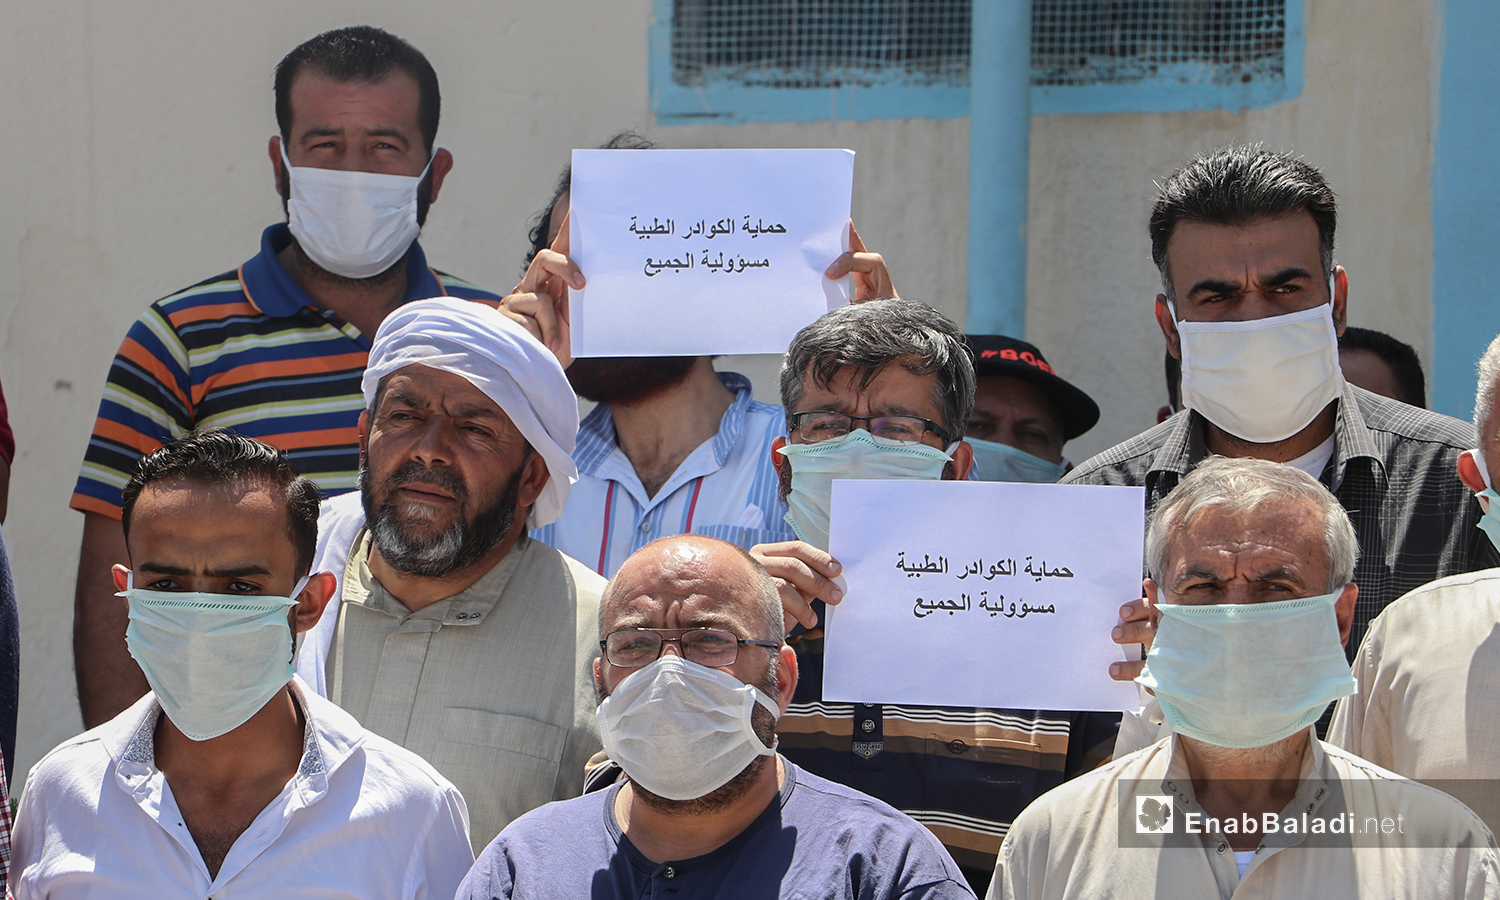 A protest stand was organized by the doctors and pharmacists